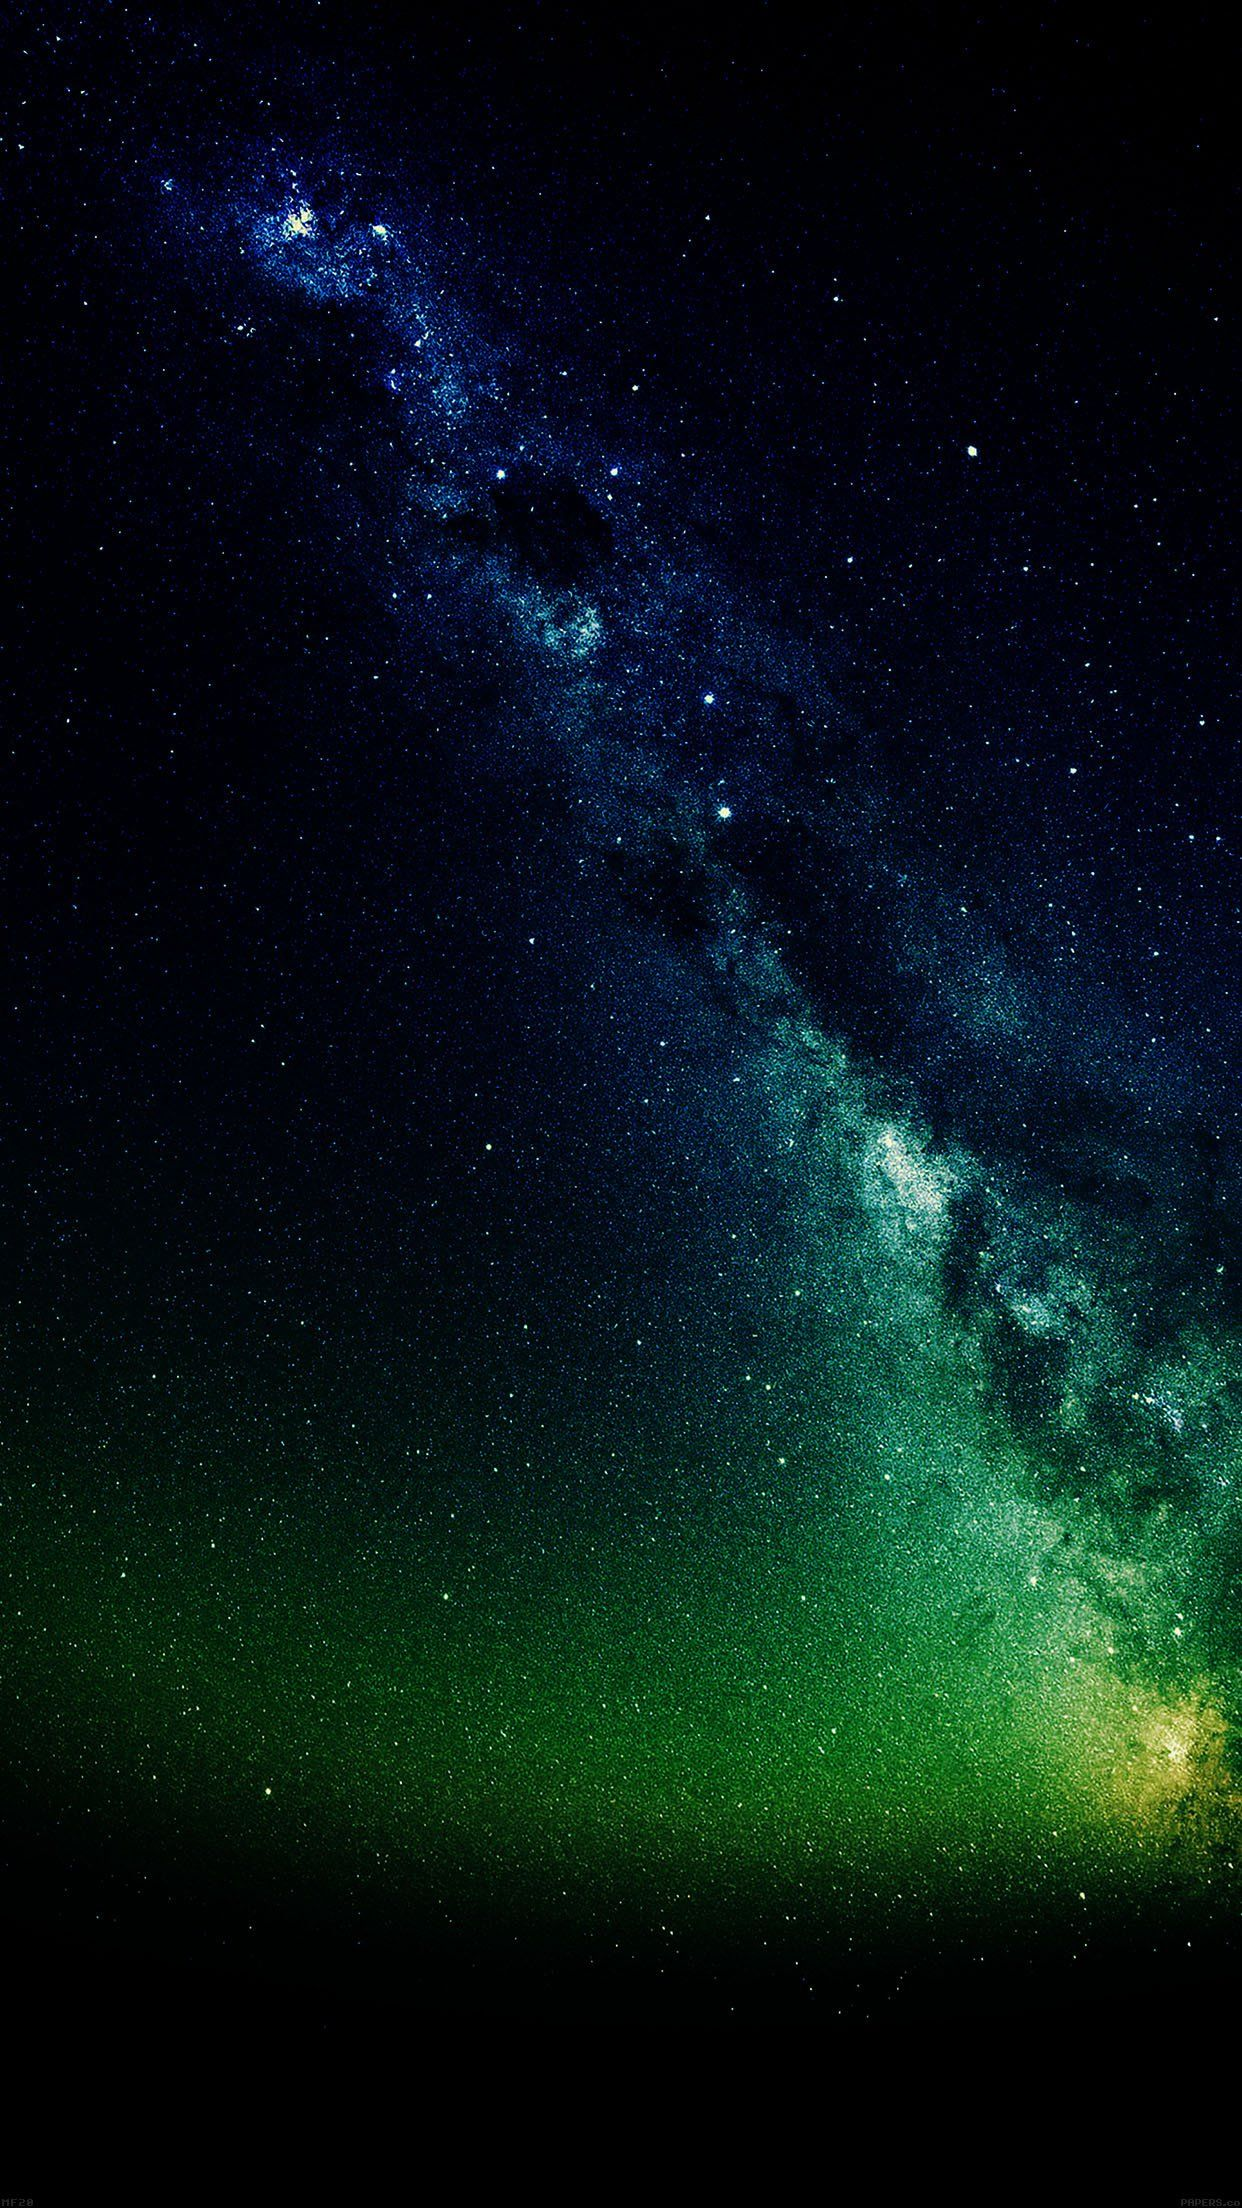 Deep Blue Space Iphone 5 Wallpaper Ipod Wallpaper Hd Free